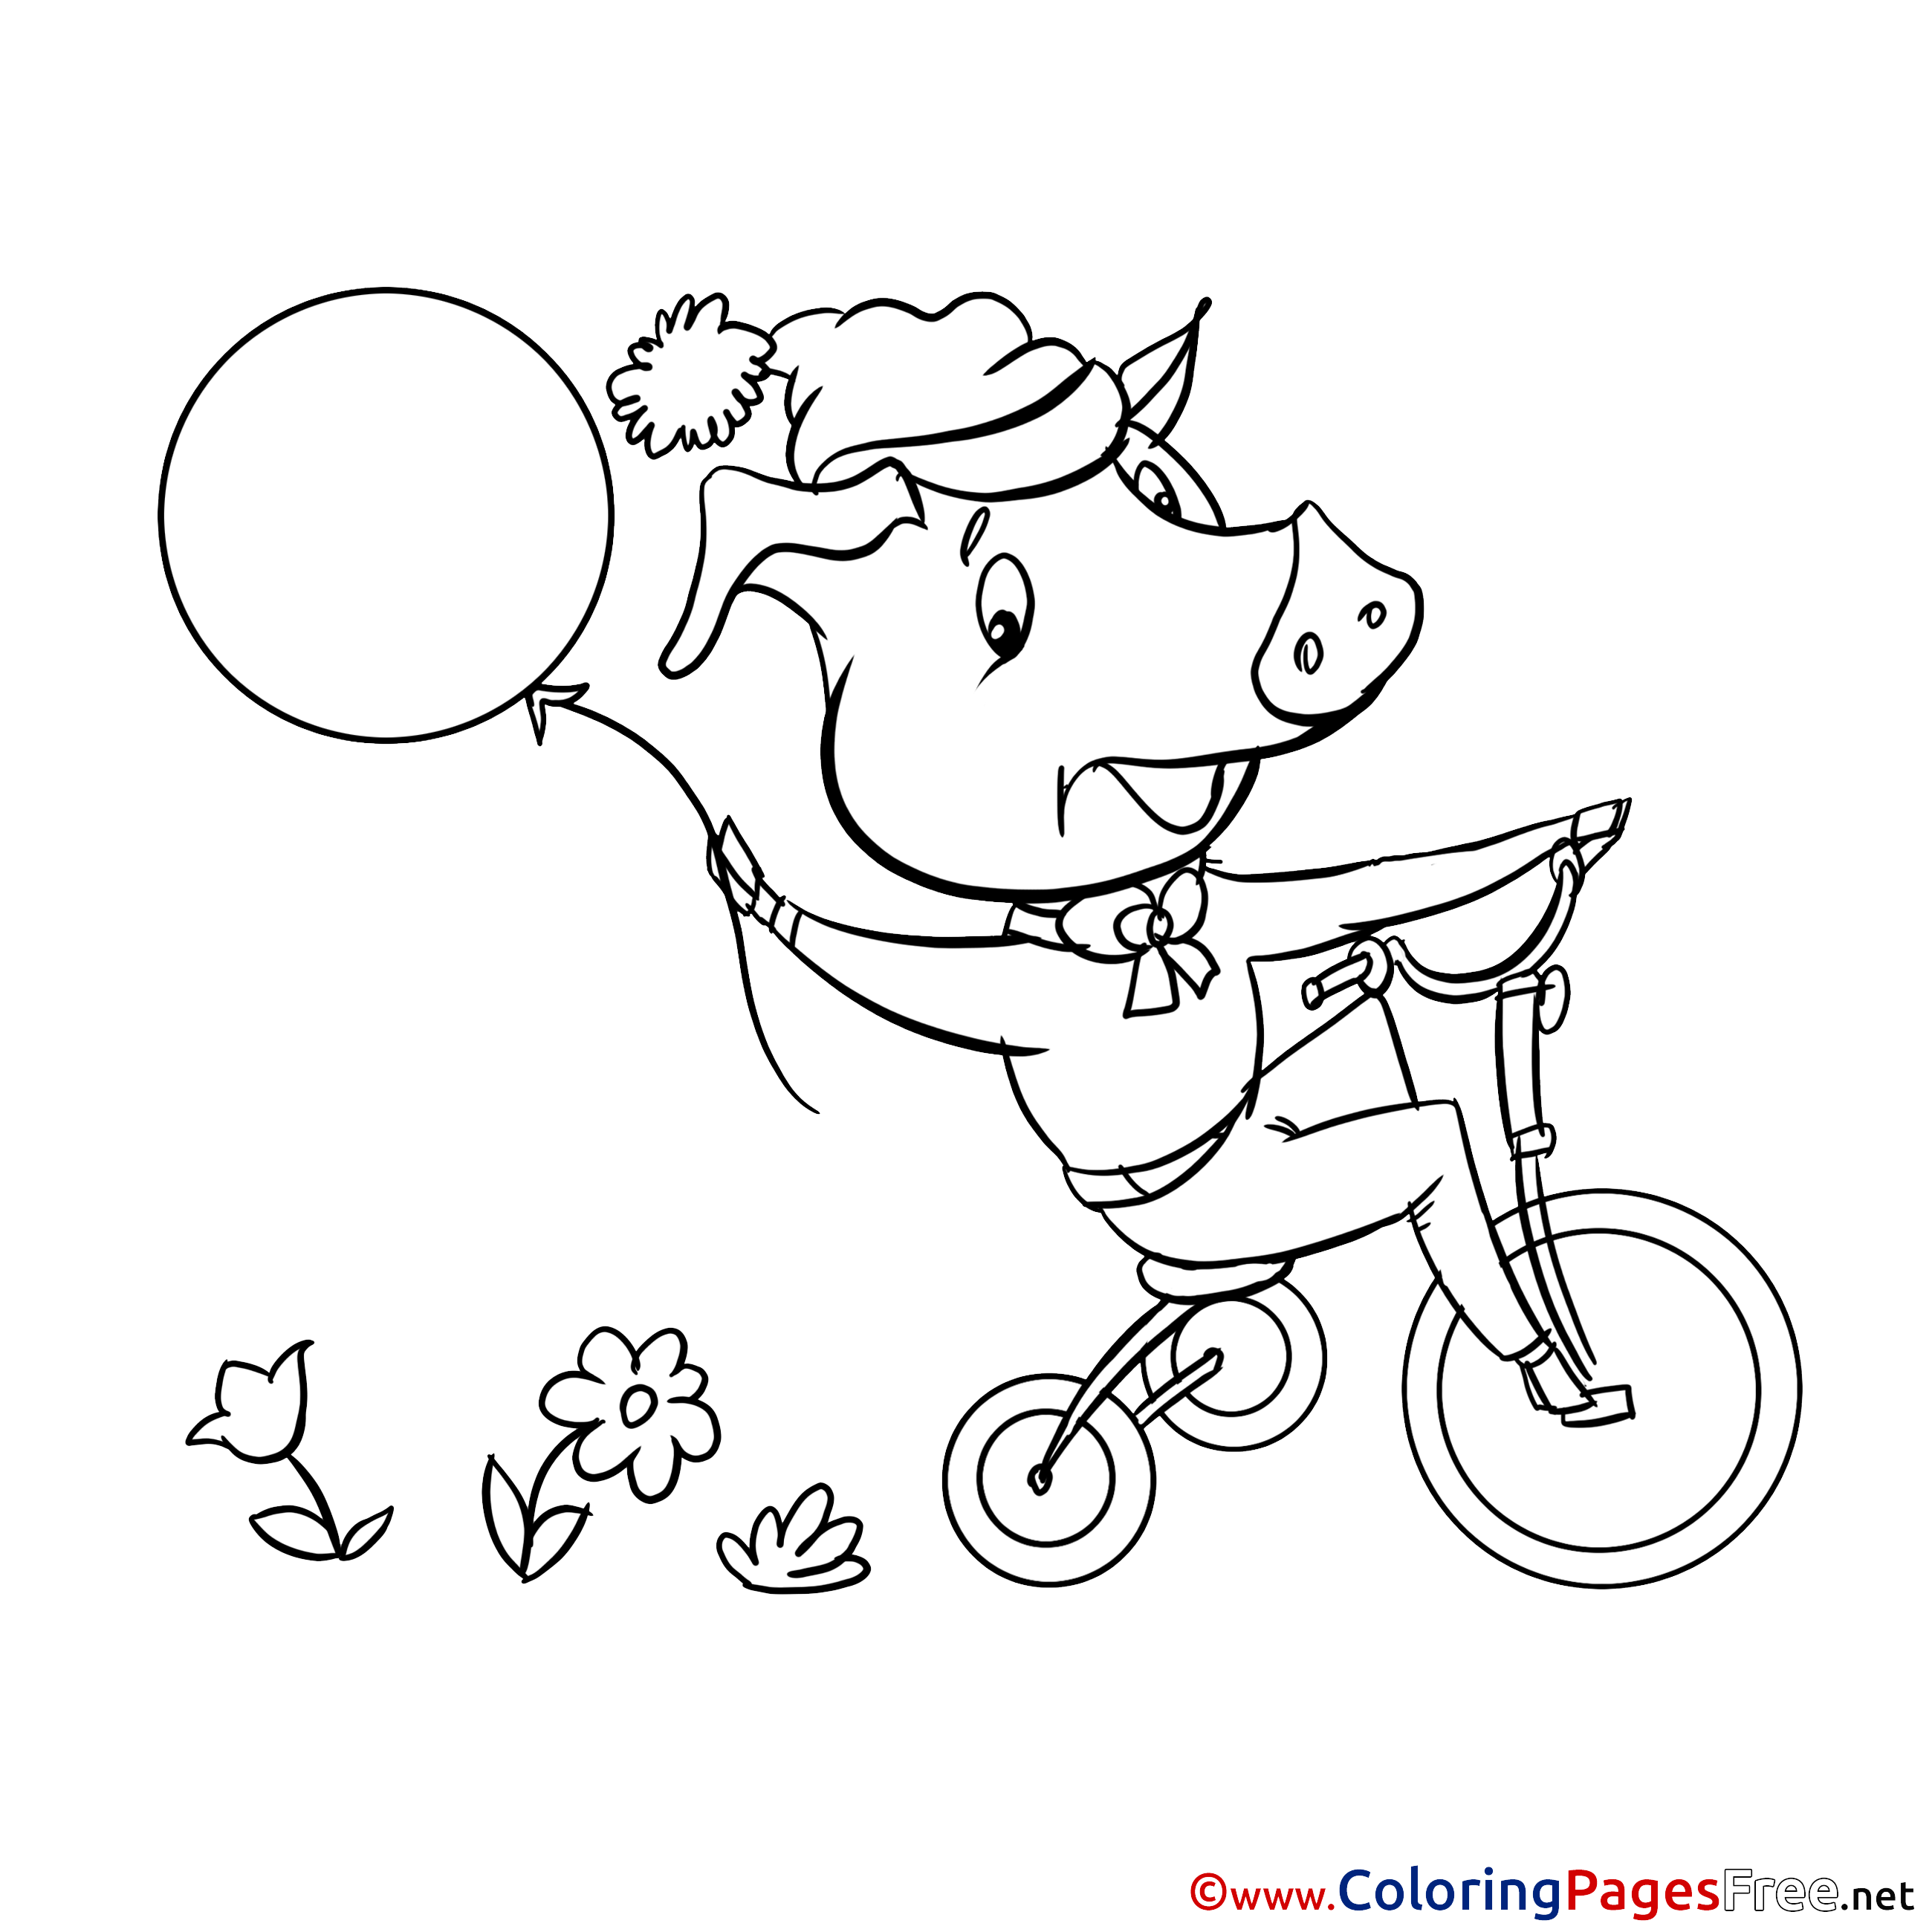 pig coloring pages for preschoolers - photo#30